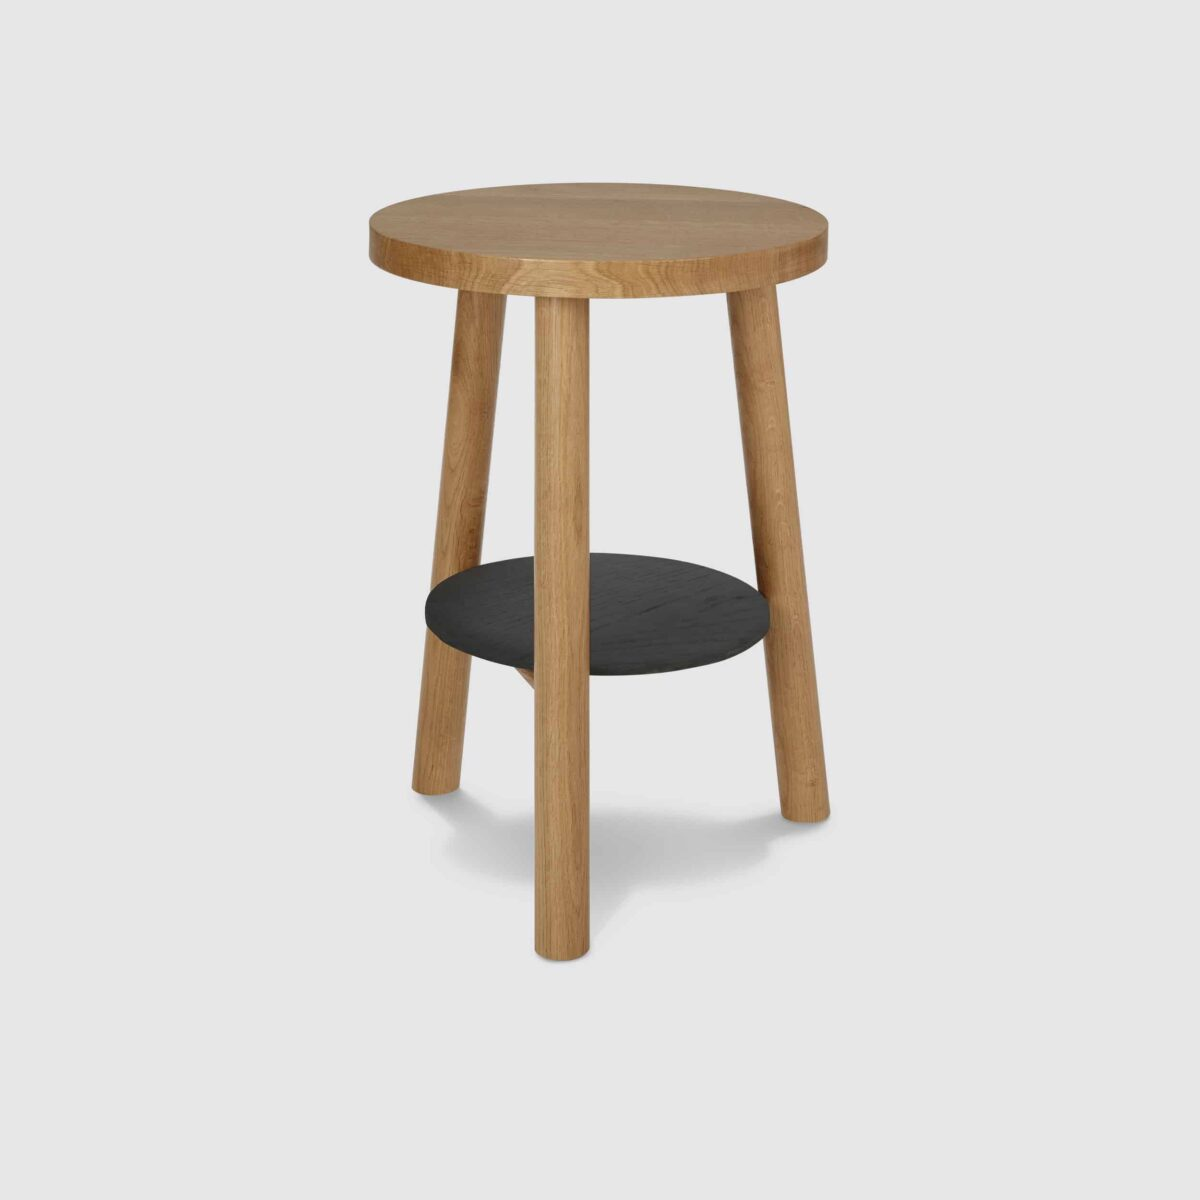 semley-side-table-oak-another-country-002b